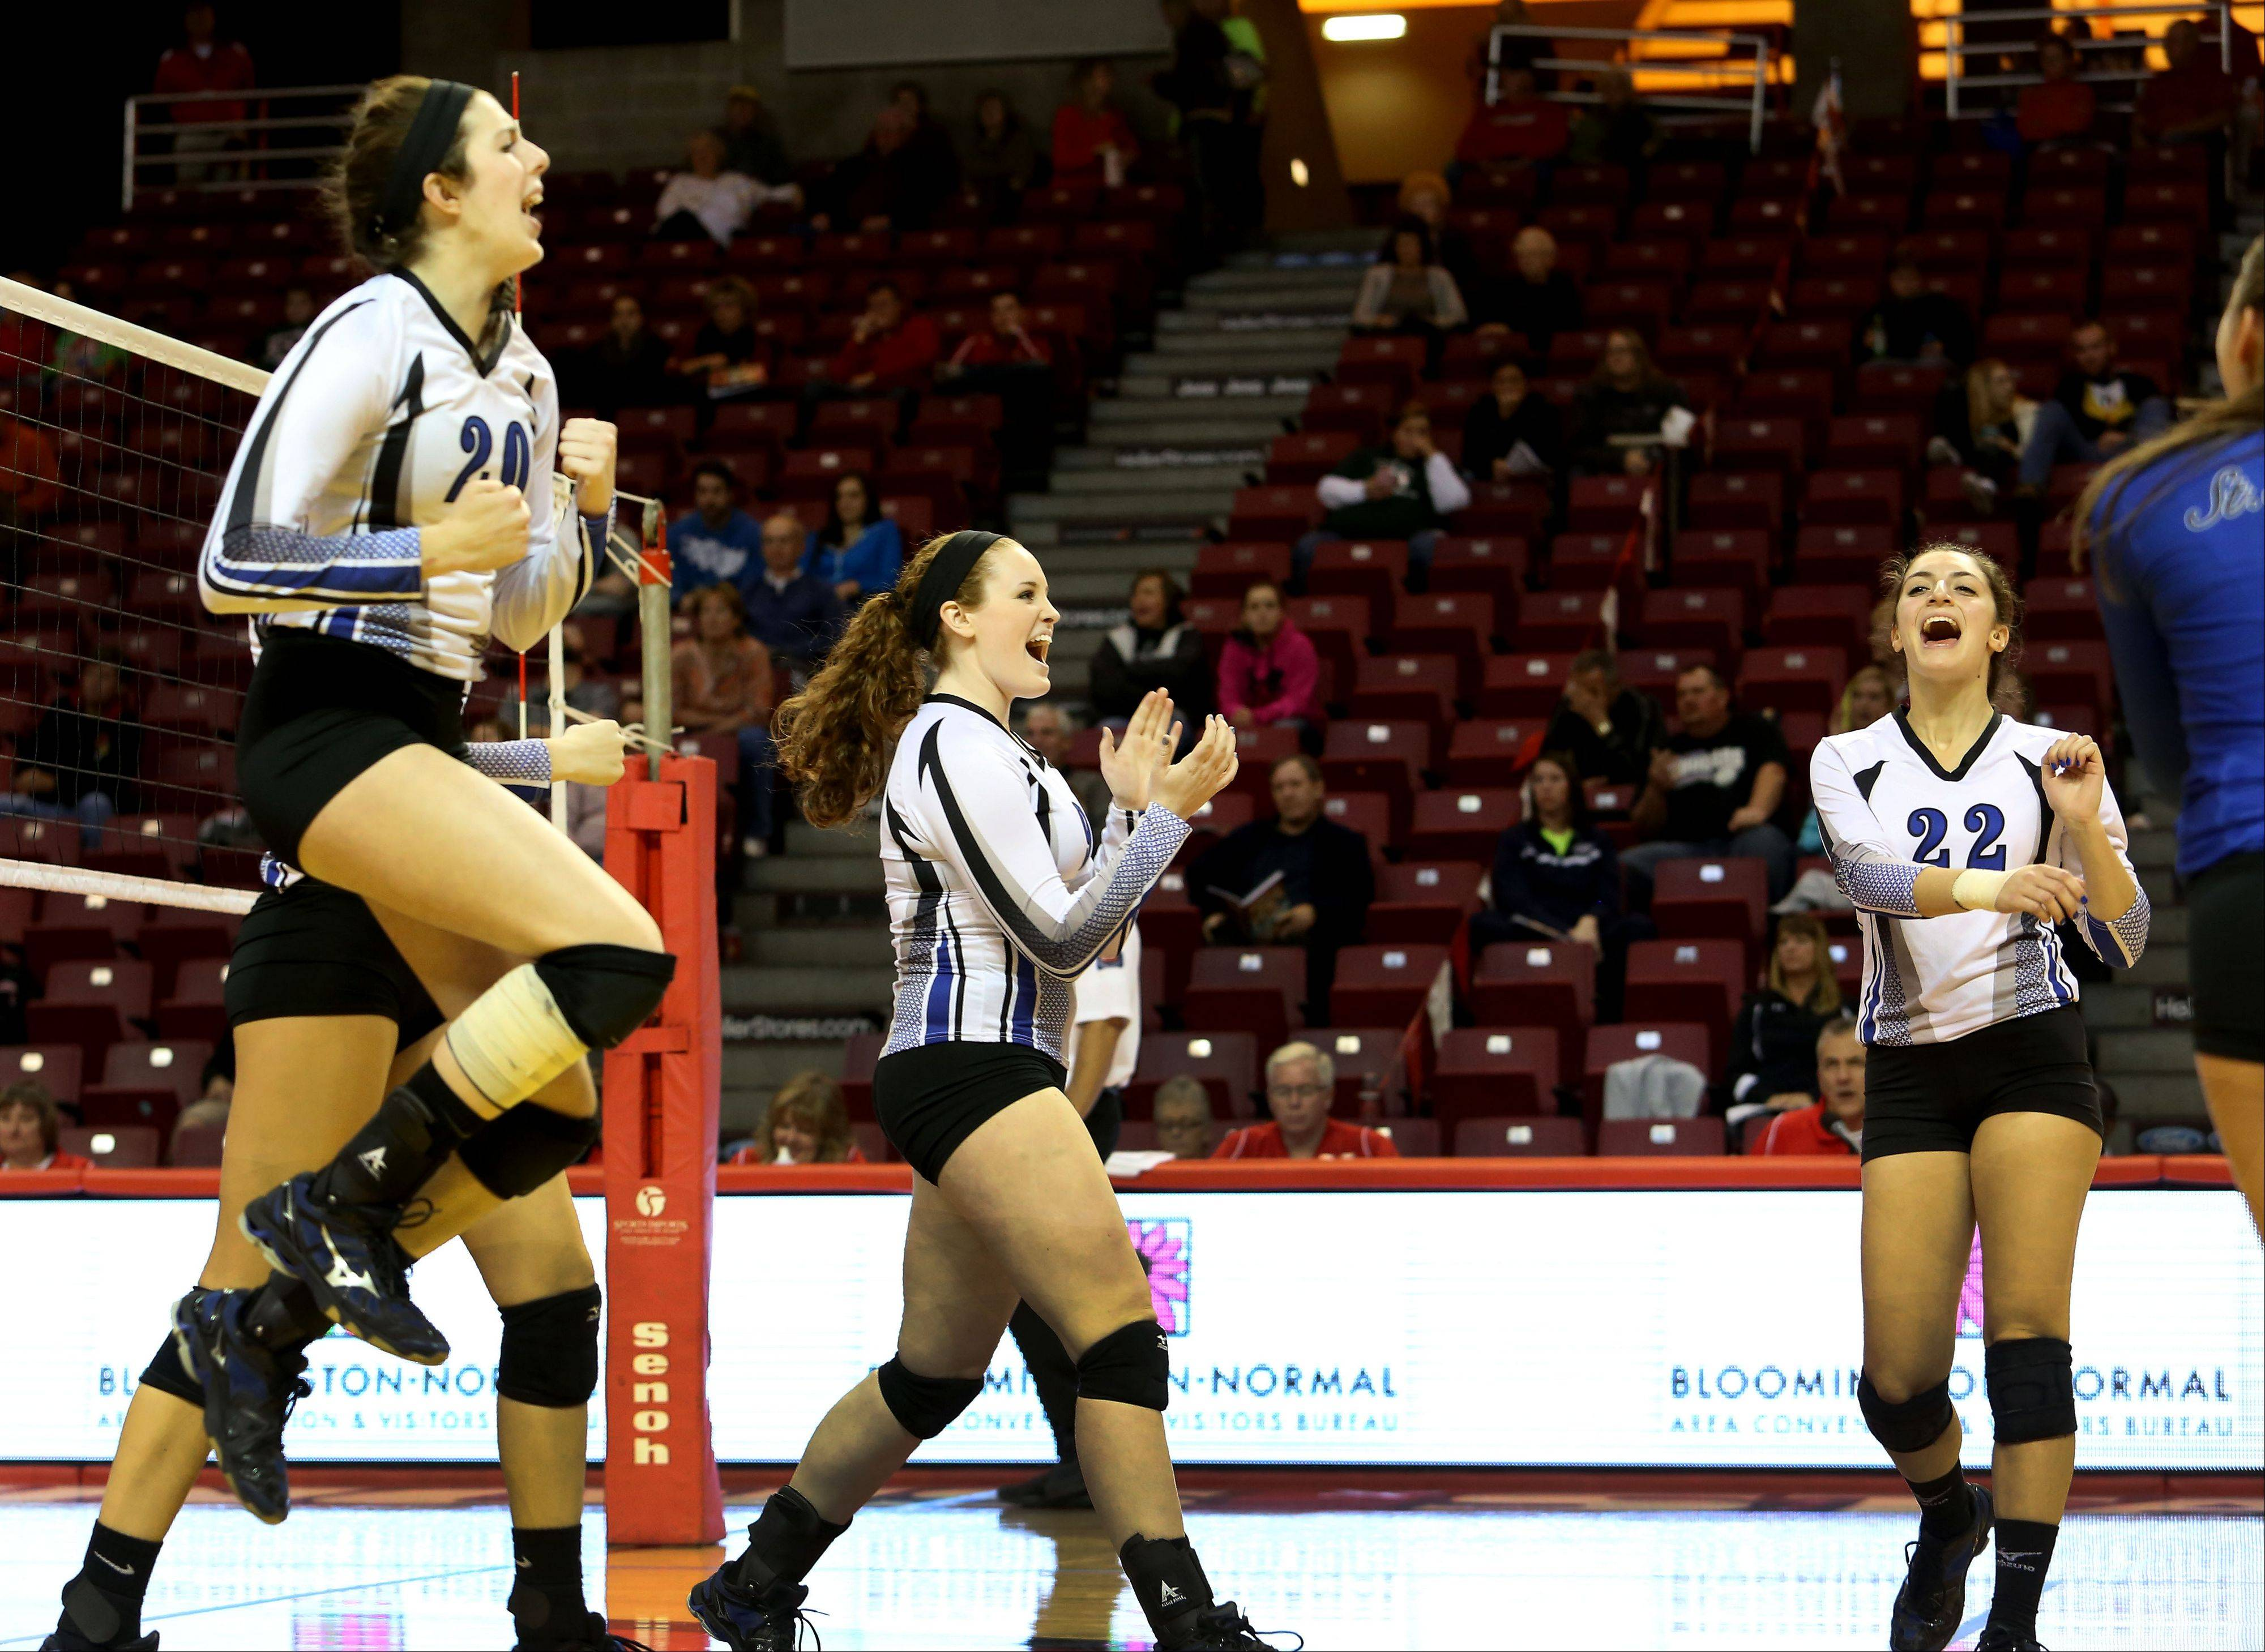 St. Francis reacts to a point won over Breese Central in Class 3A state girls volleyball action on Friday in Normal.